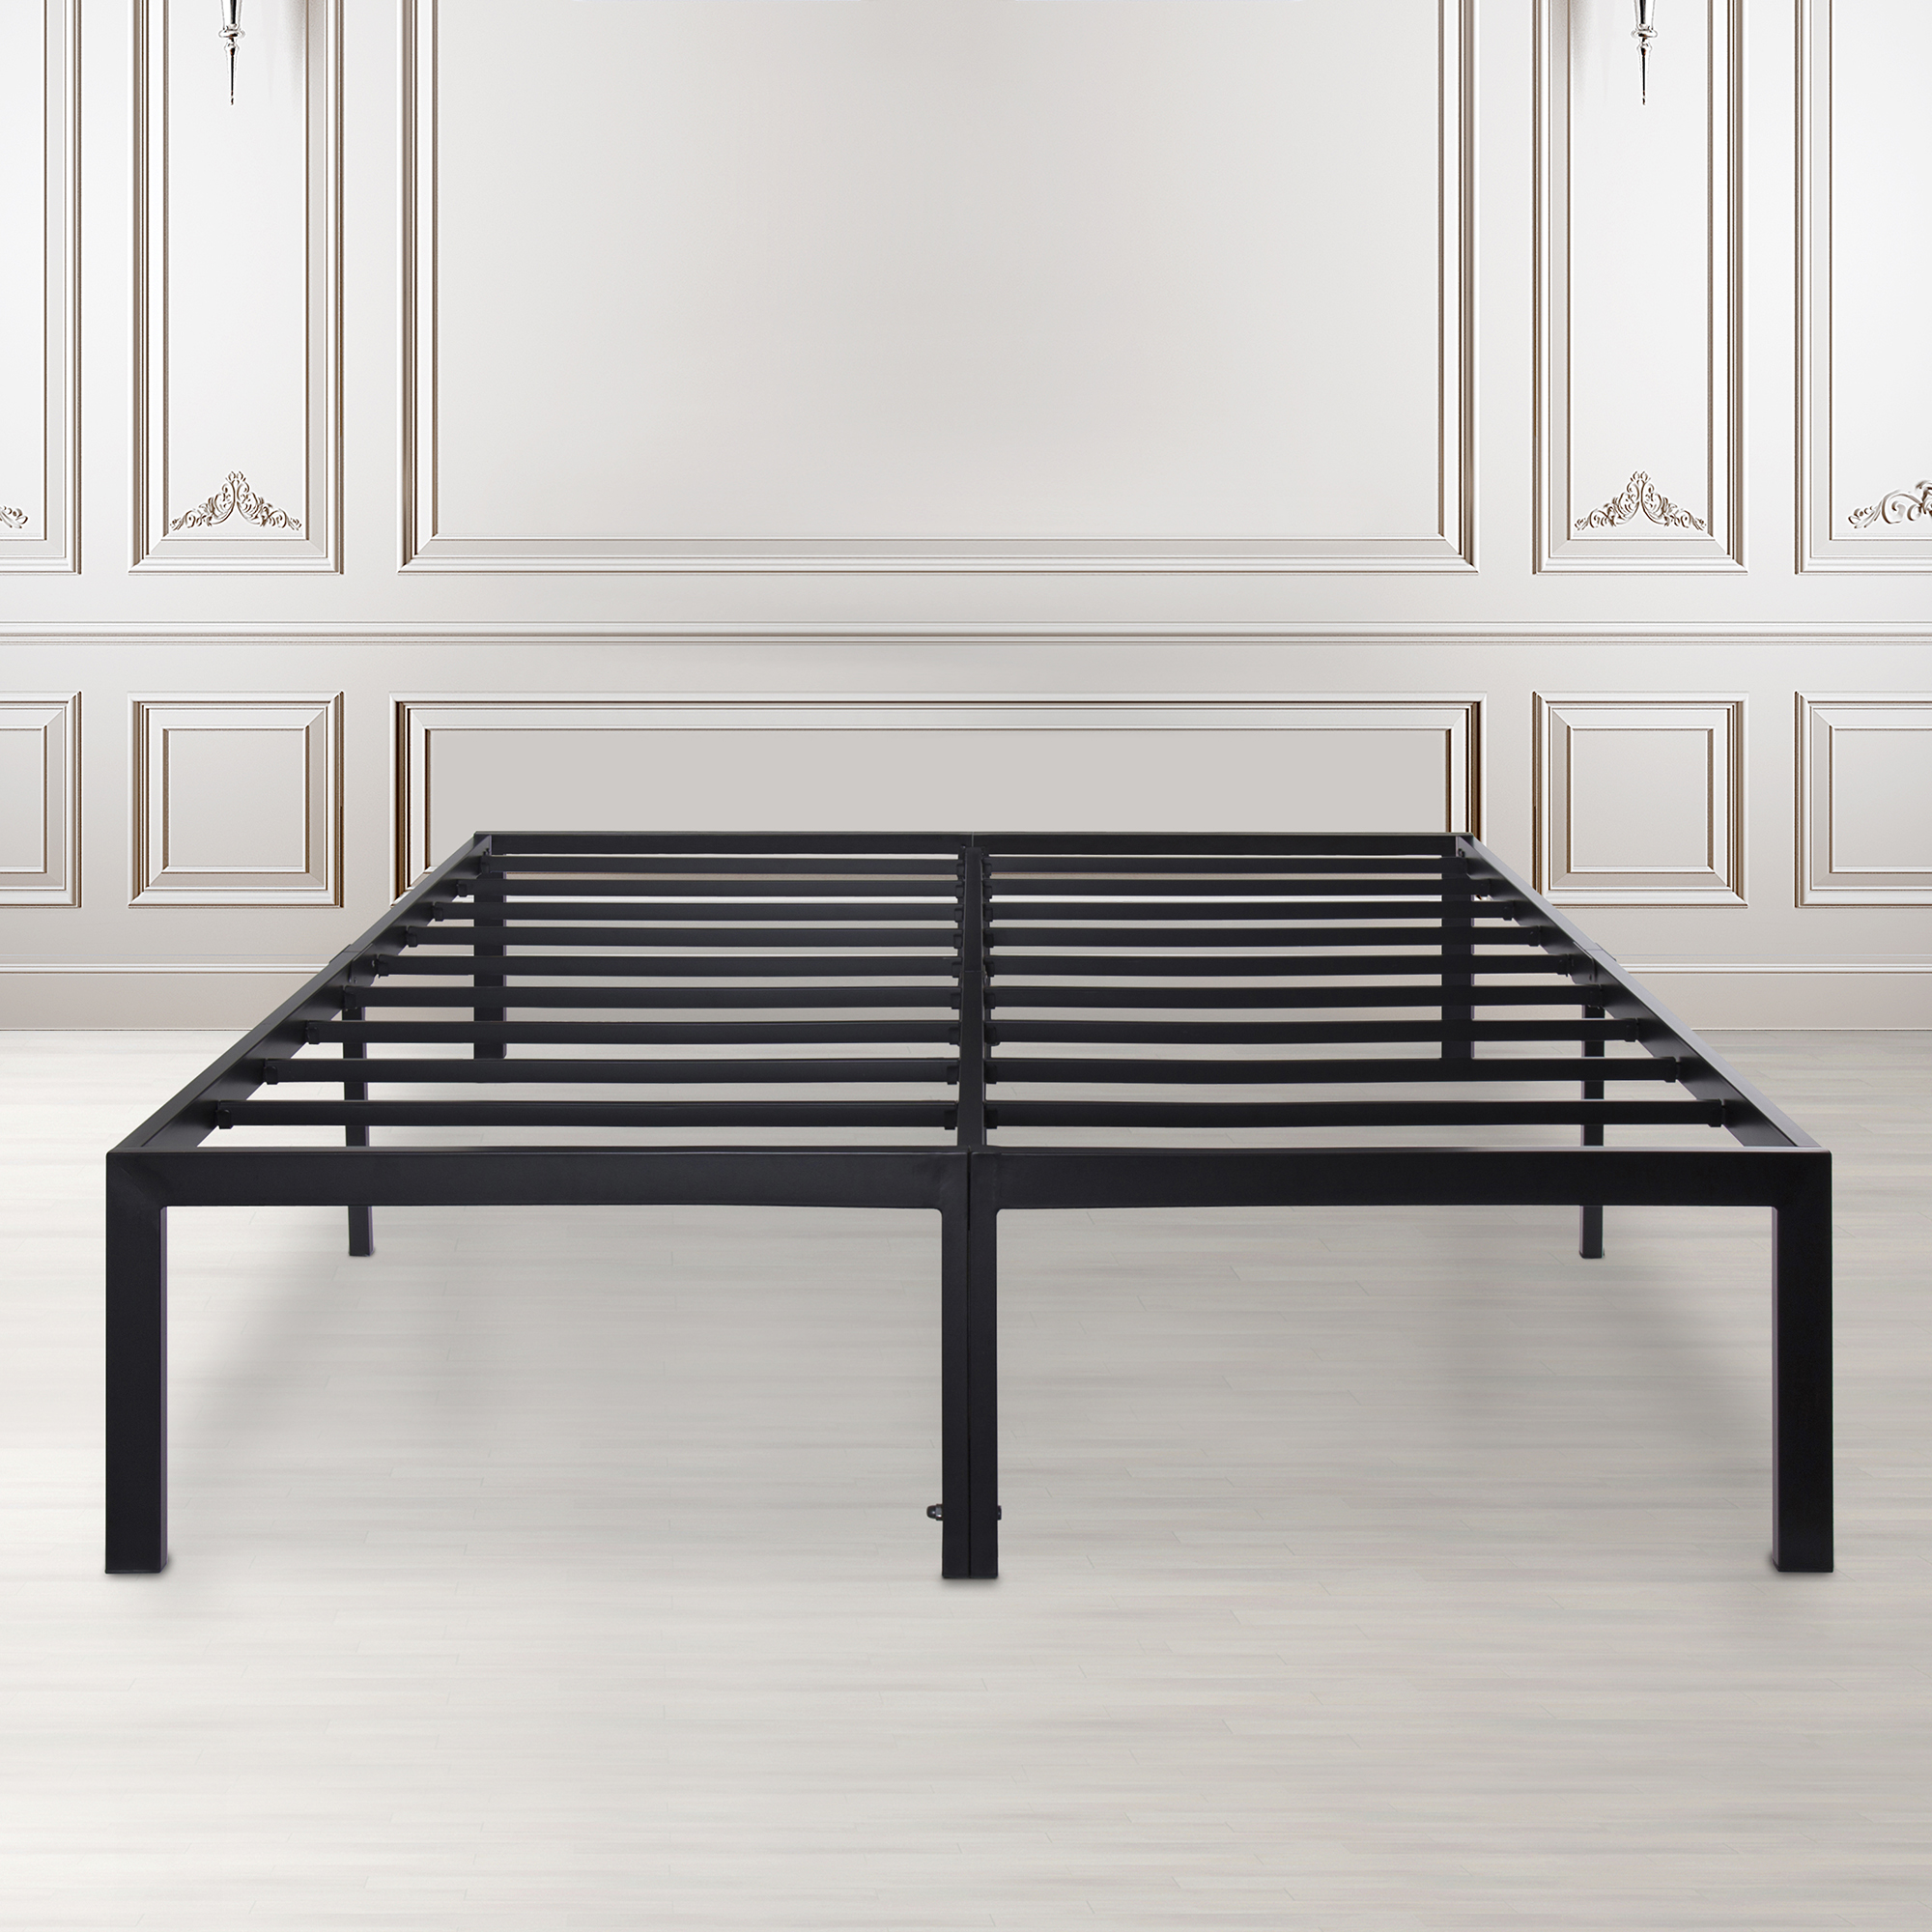 GranRest 14'' Dura Metal Bed Frame with Non-Slip Feature,Queen